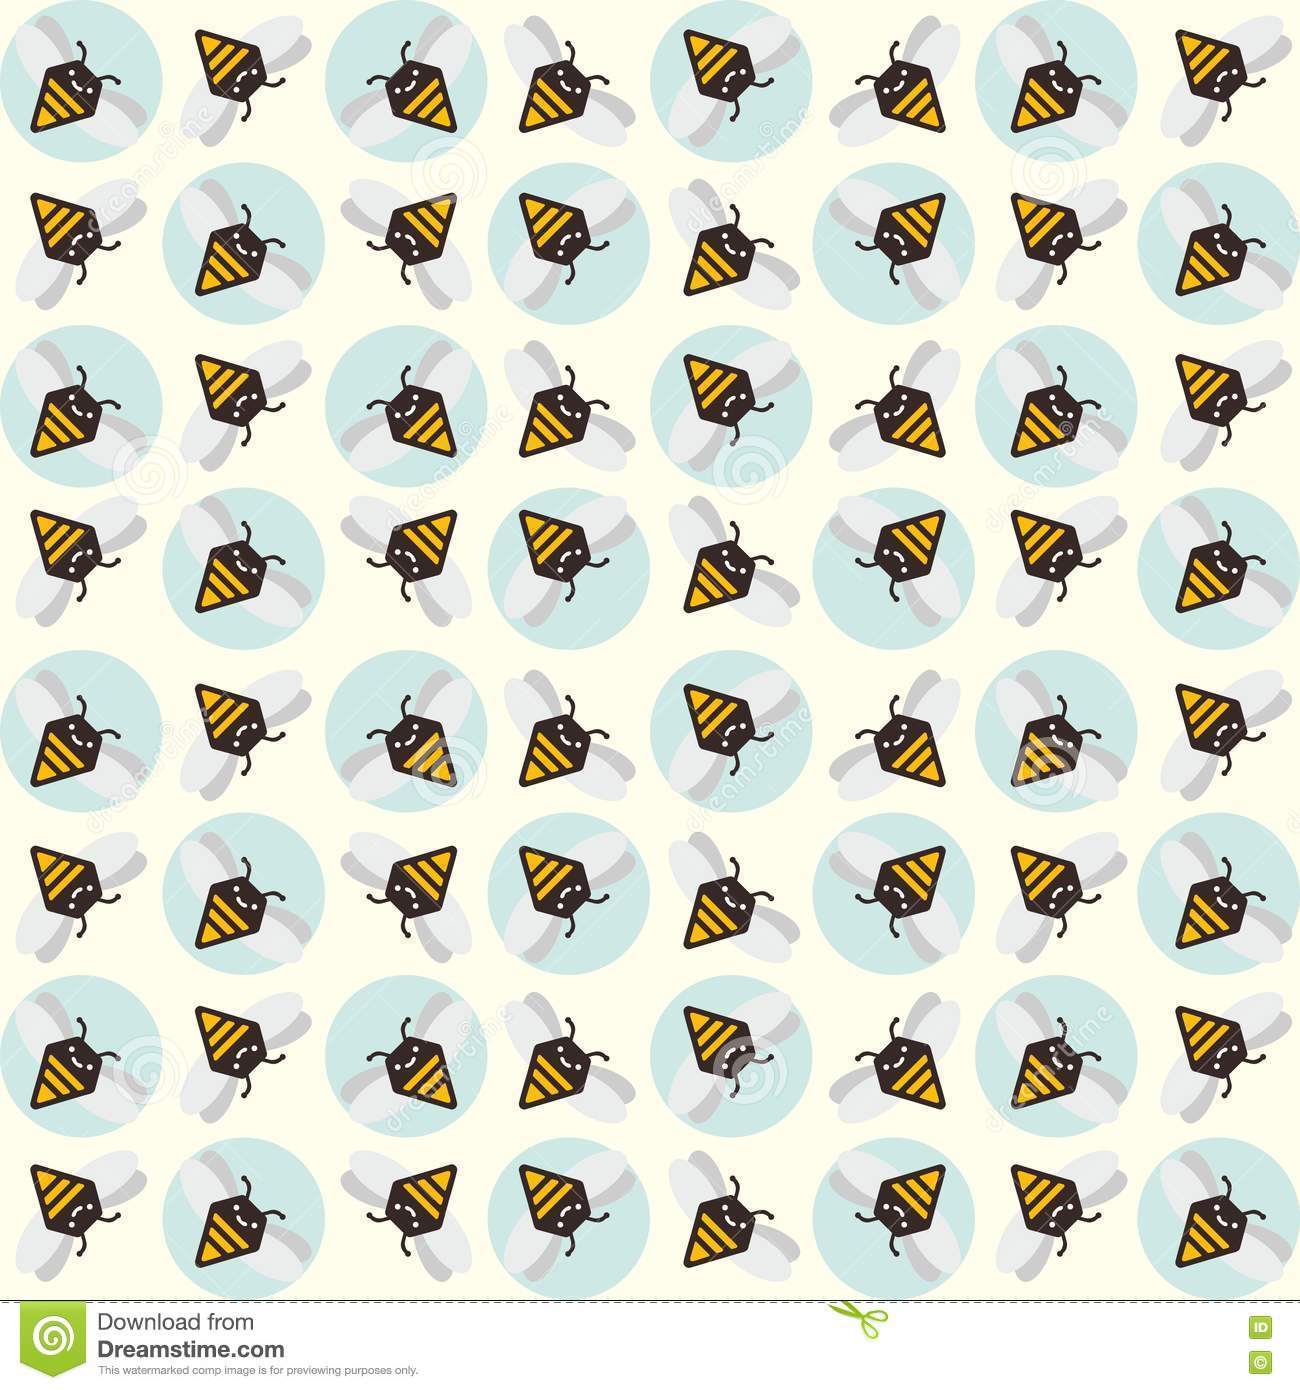 Background of abstract bees